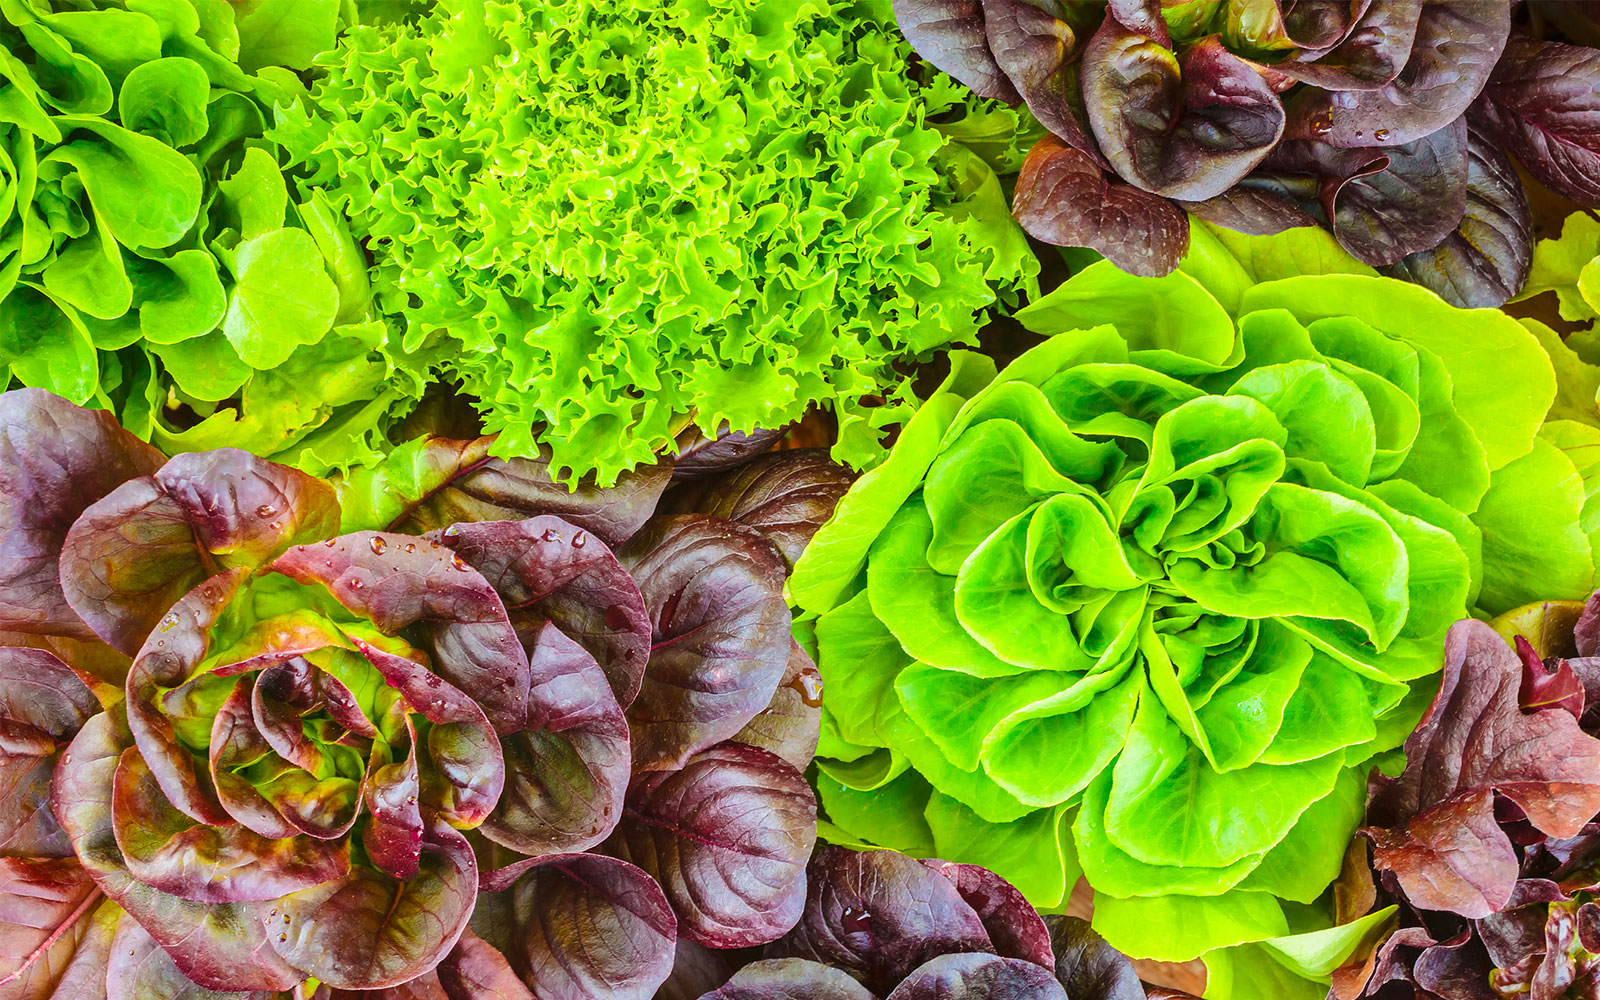 Lettuce and lettuce: all the differences